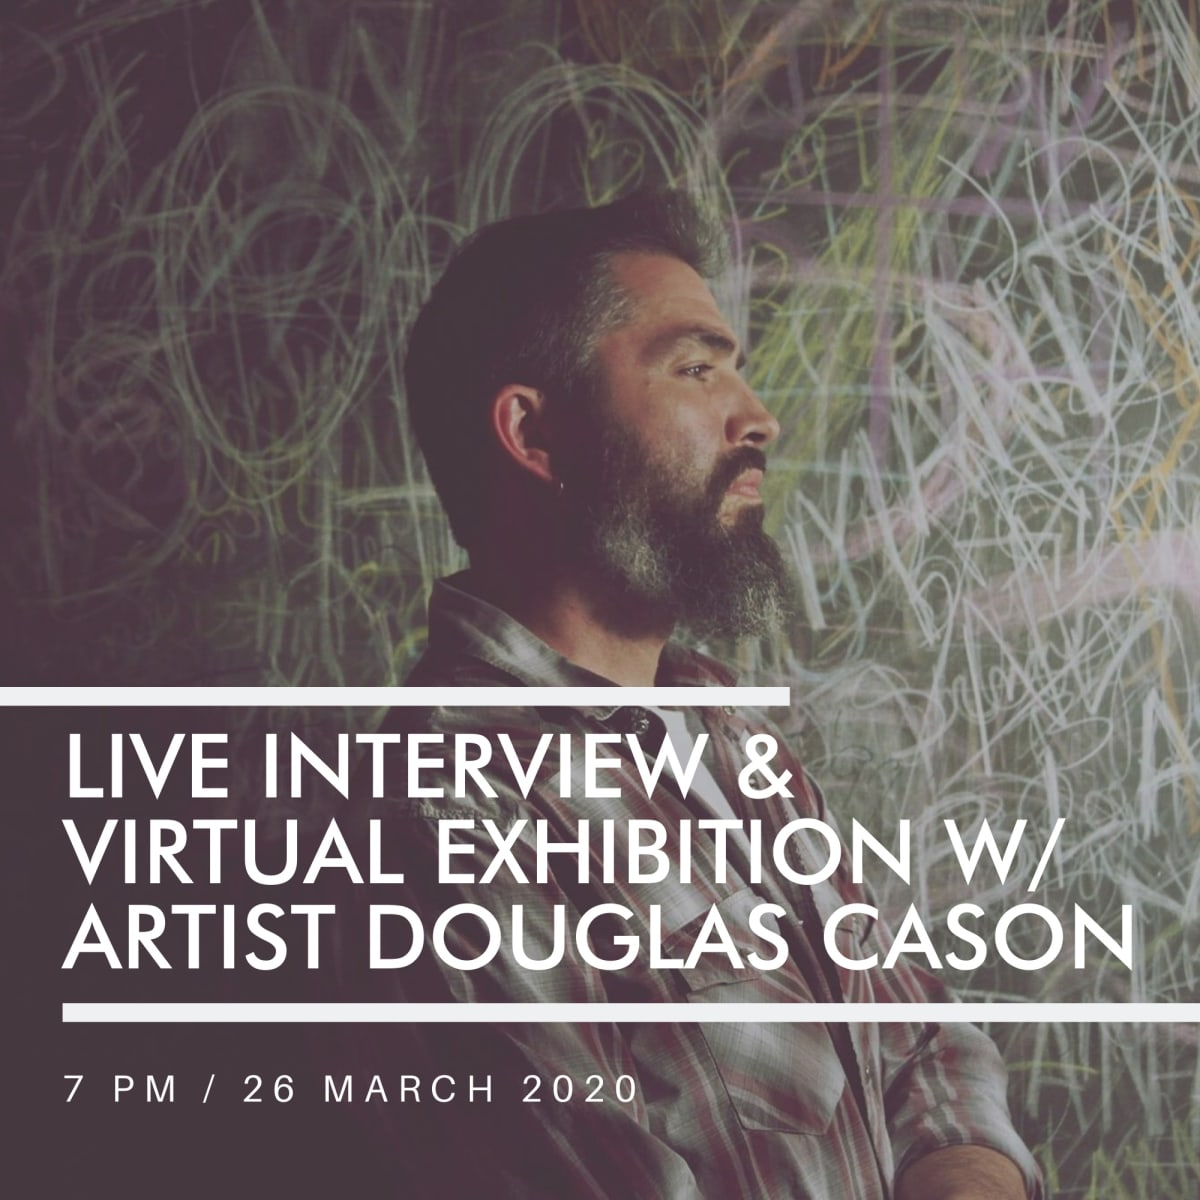 LIVE Interview & Virtual Exhibition w/ Artist Douglas Cason, LIVE FACEBOOK EVENT 7 PM